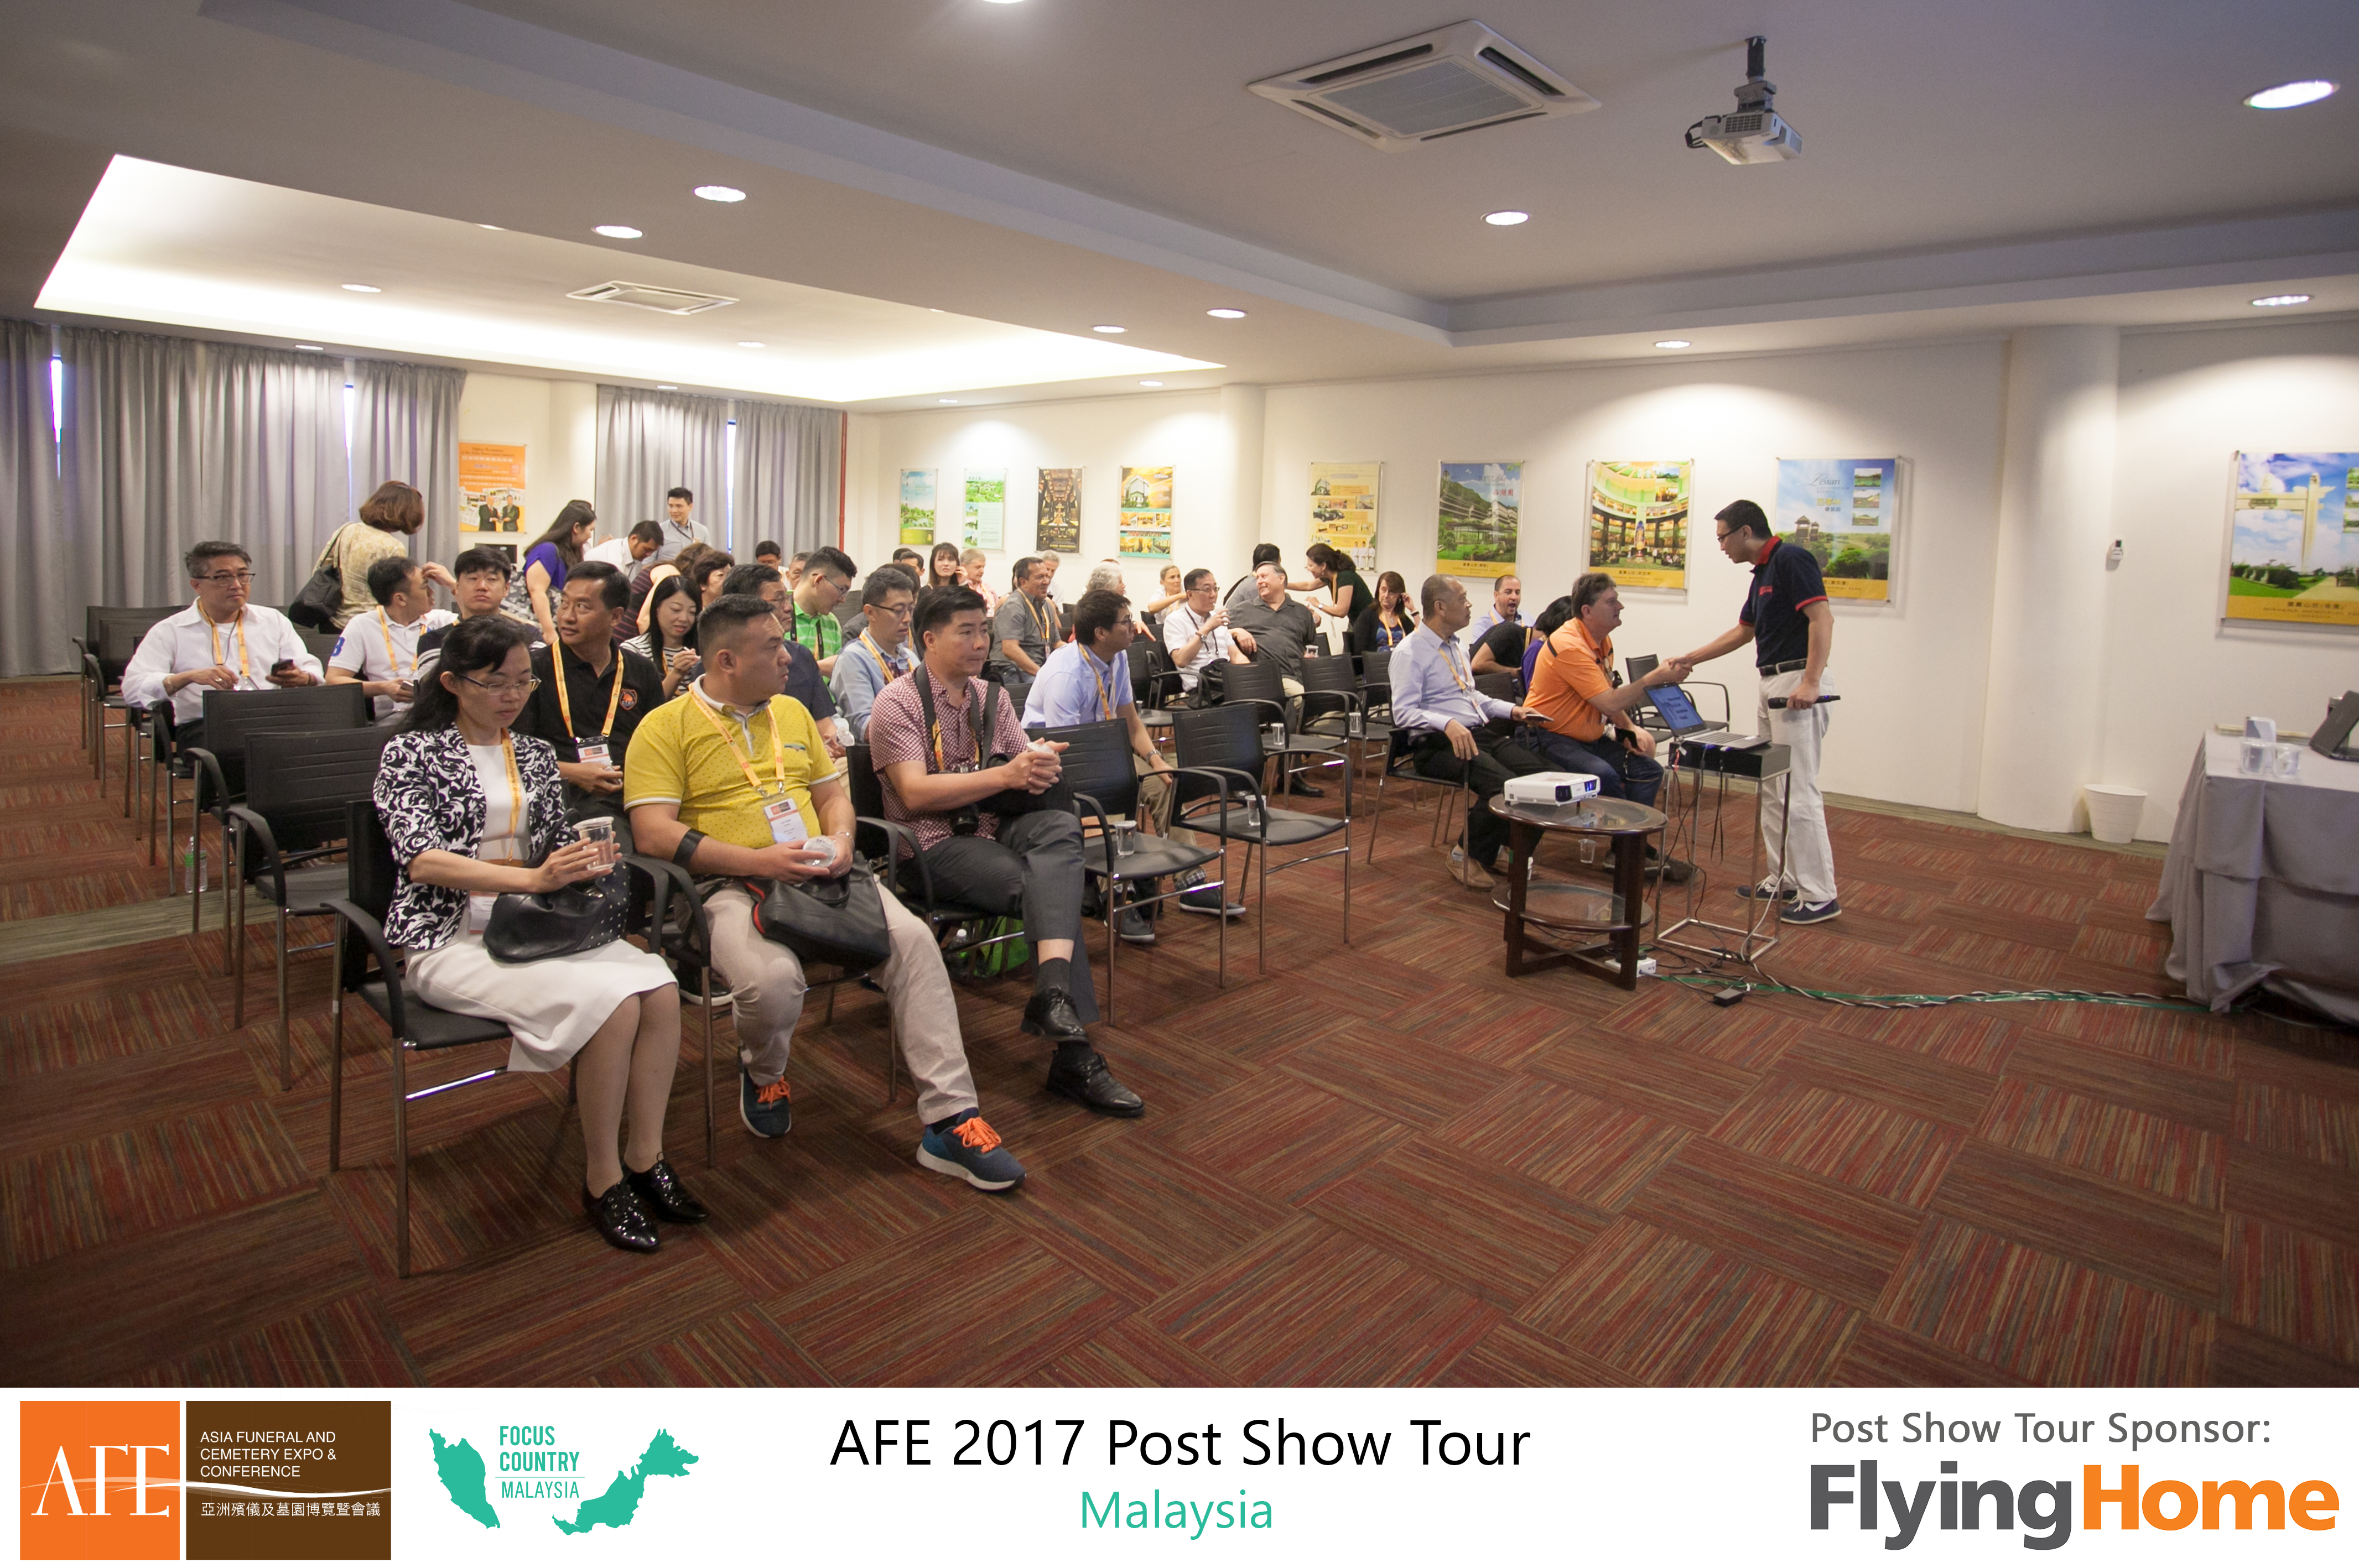 AFE Post Show Tour 2017 Day 2 - 02